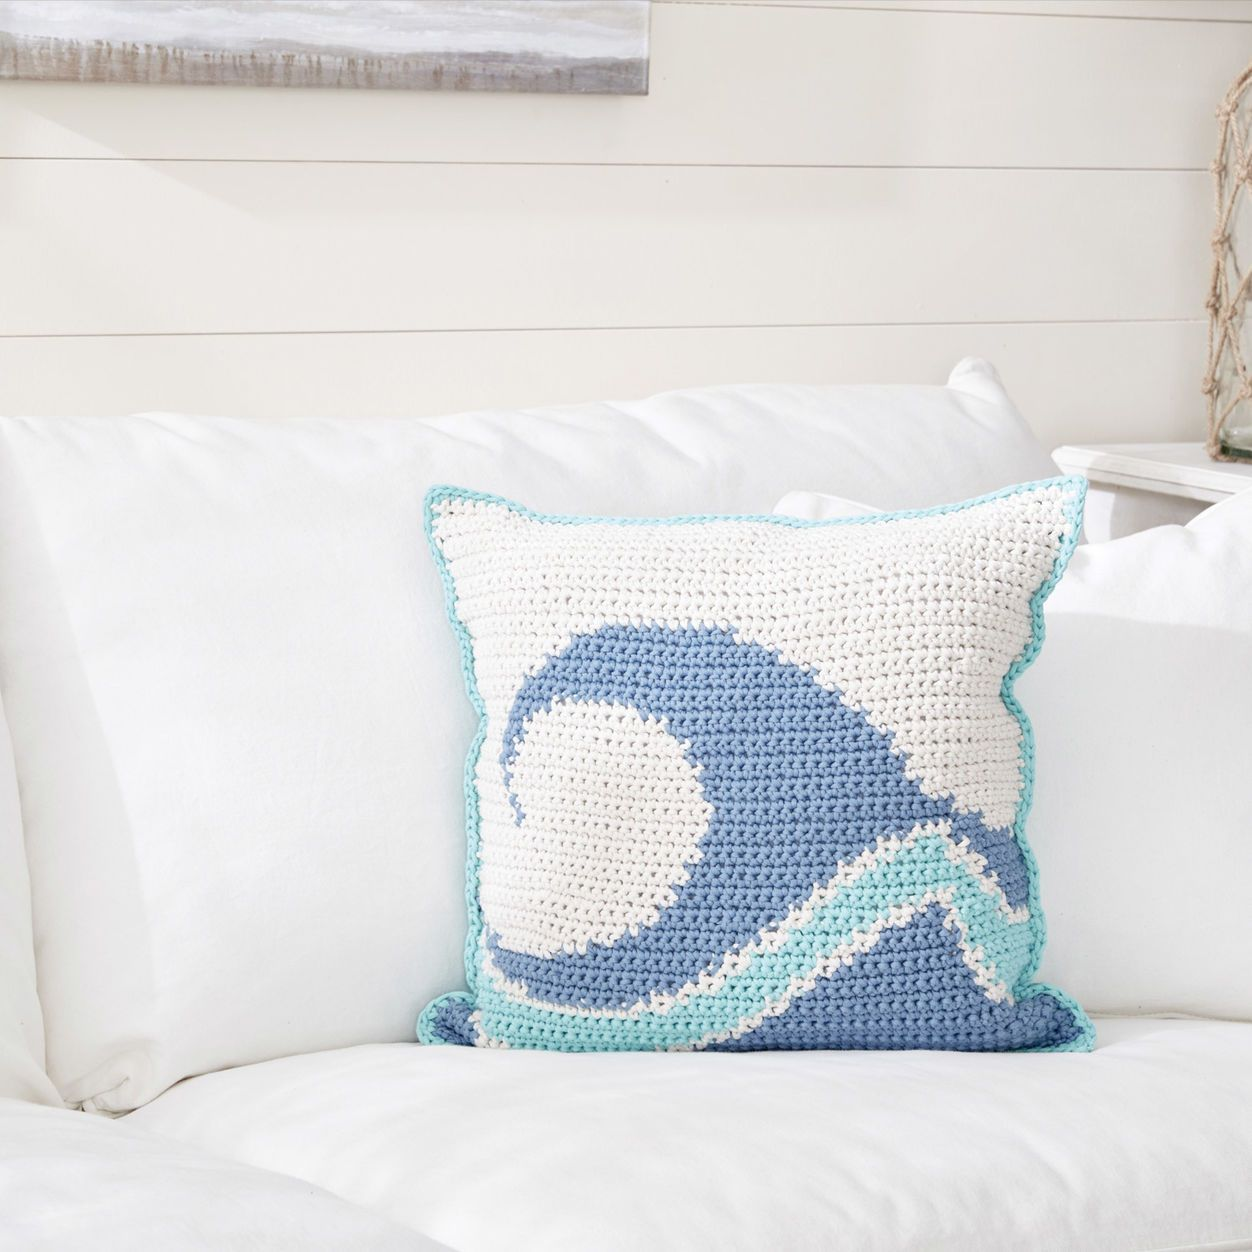 Bernat Catch A Wave Crochet Pillow Crochet Pillow Crochet Home Crochet Pillows